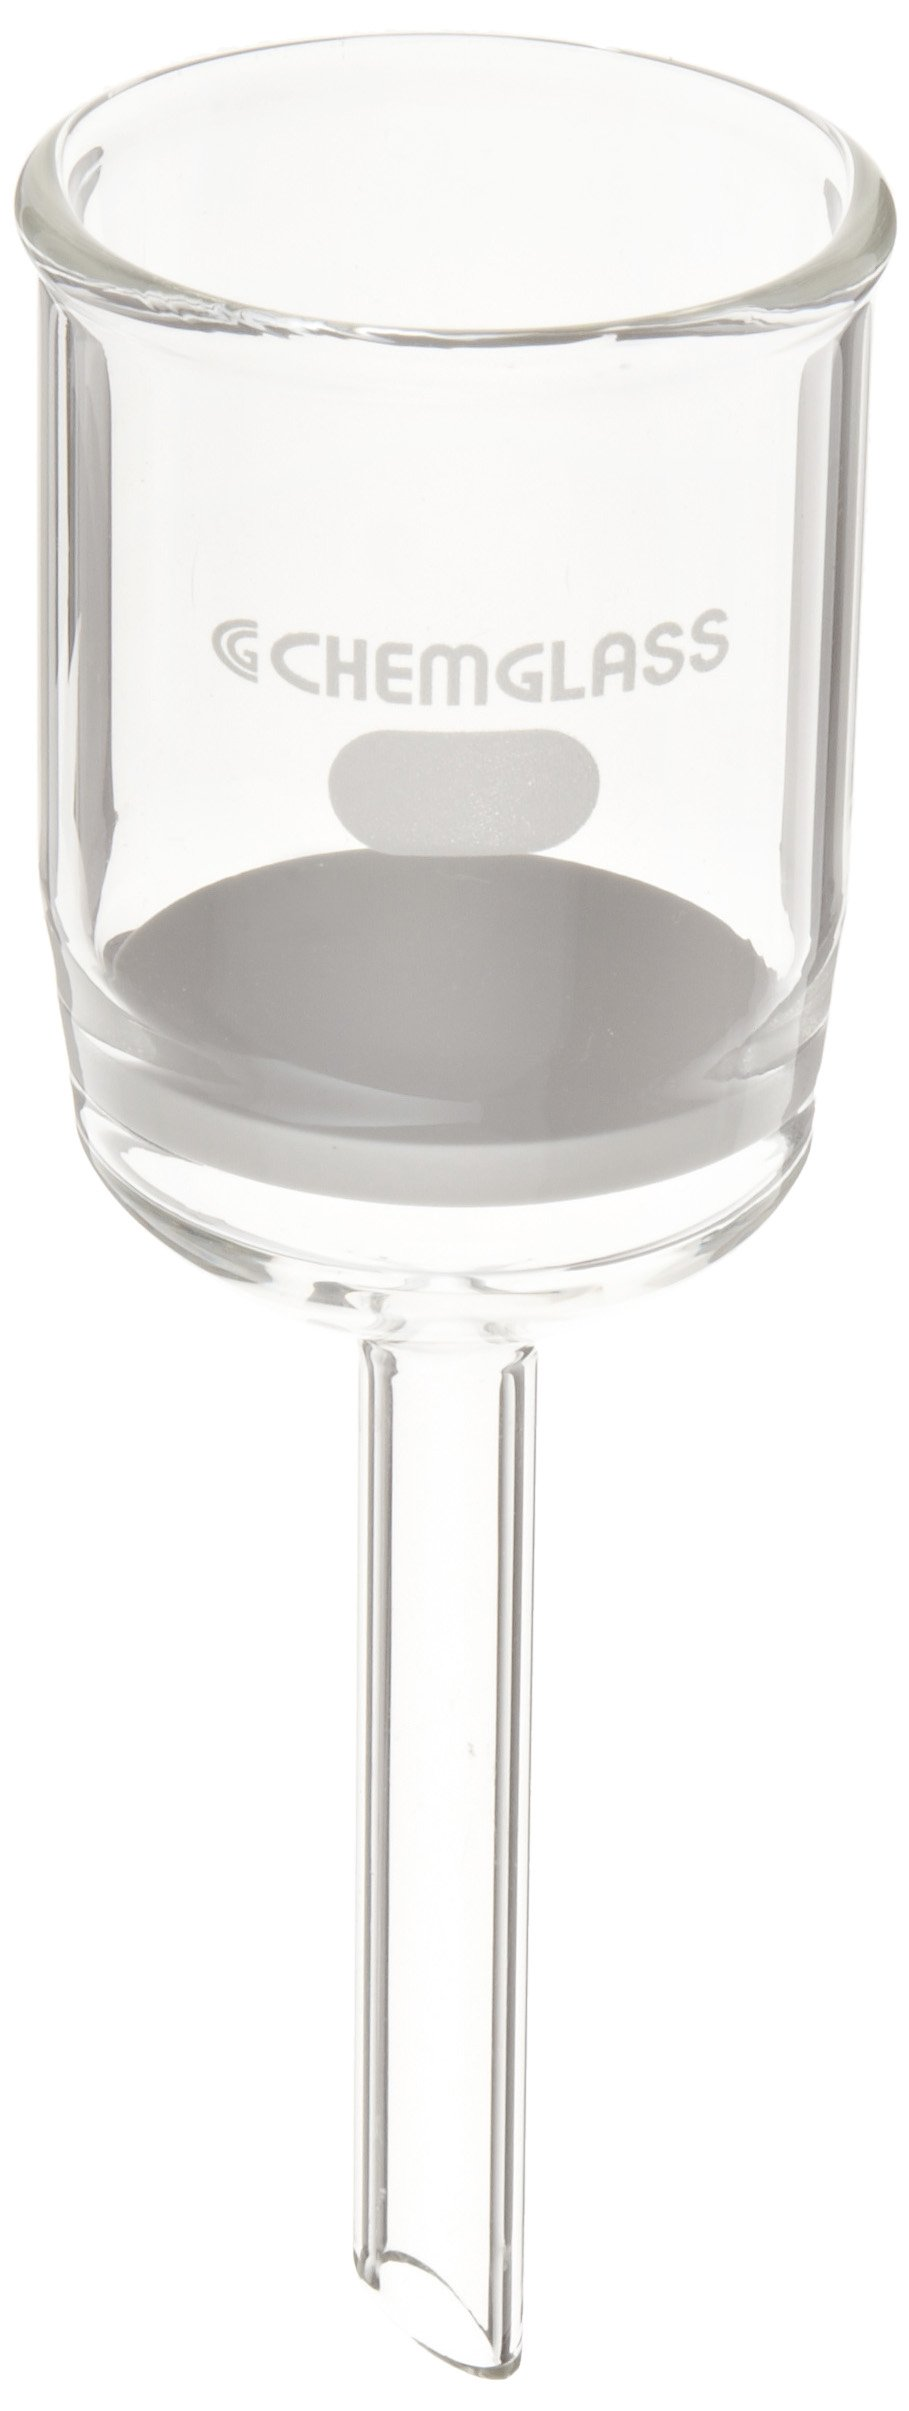 Chemglass CG-1402-16 Glass Buchner Filtering Funnel with Fine Frit, 60mL Capacity